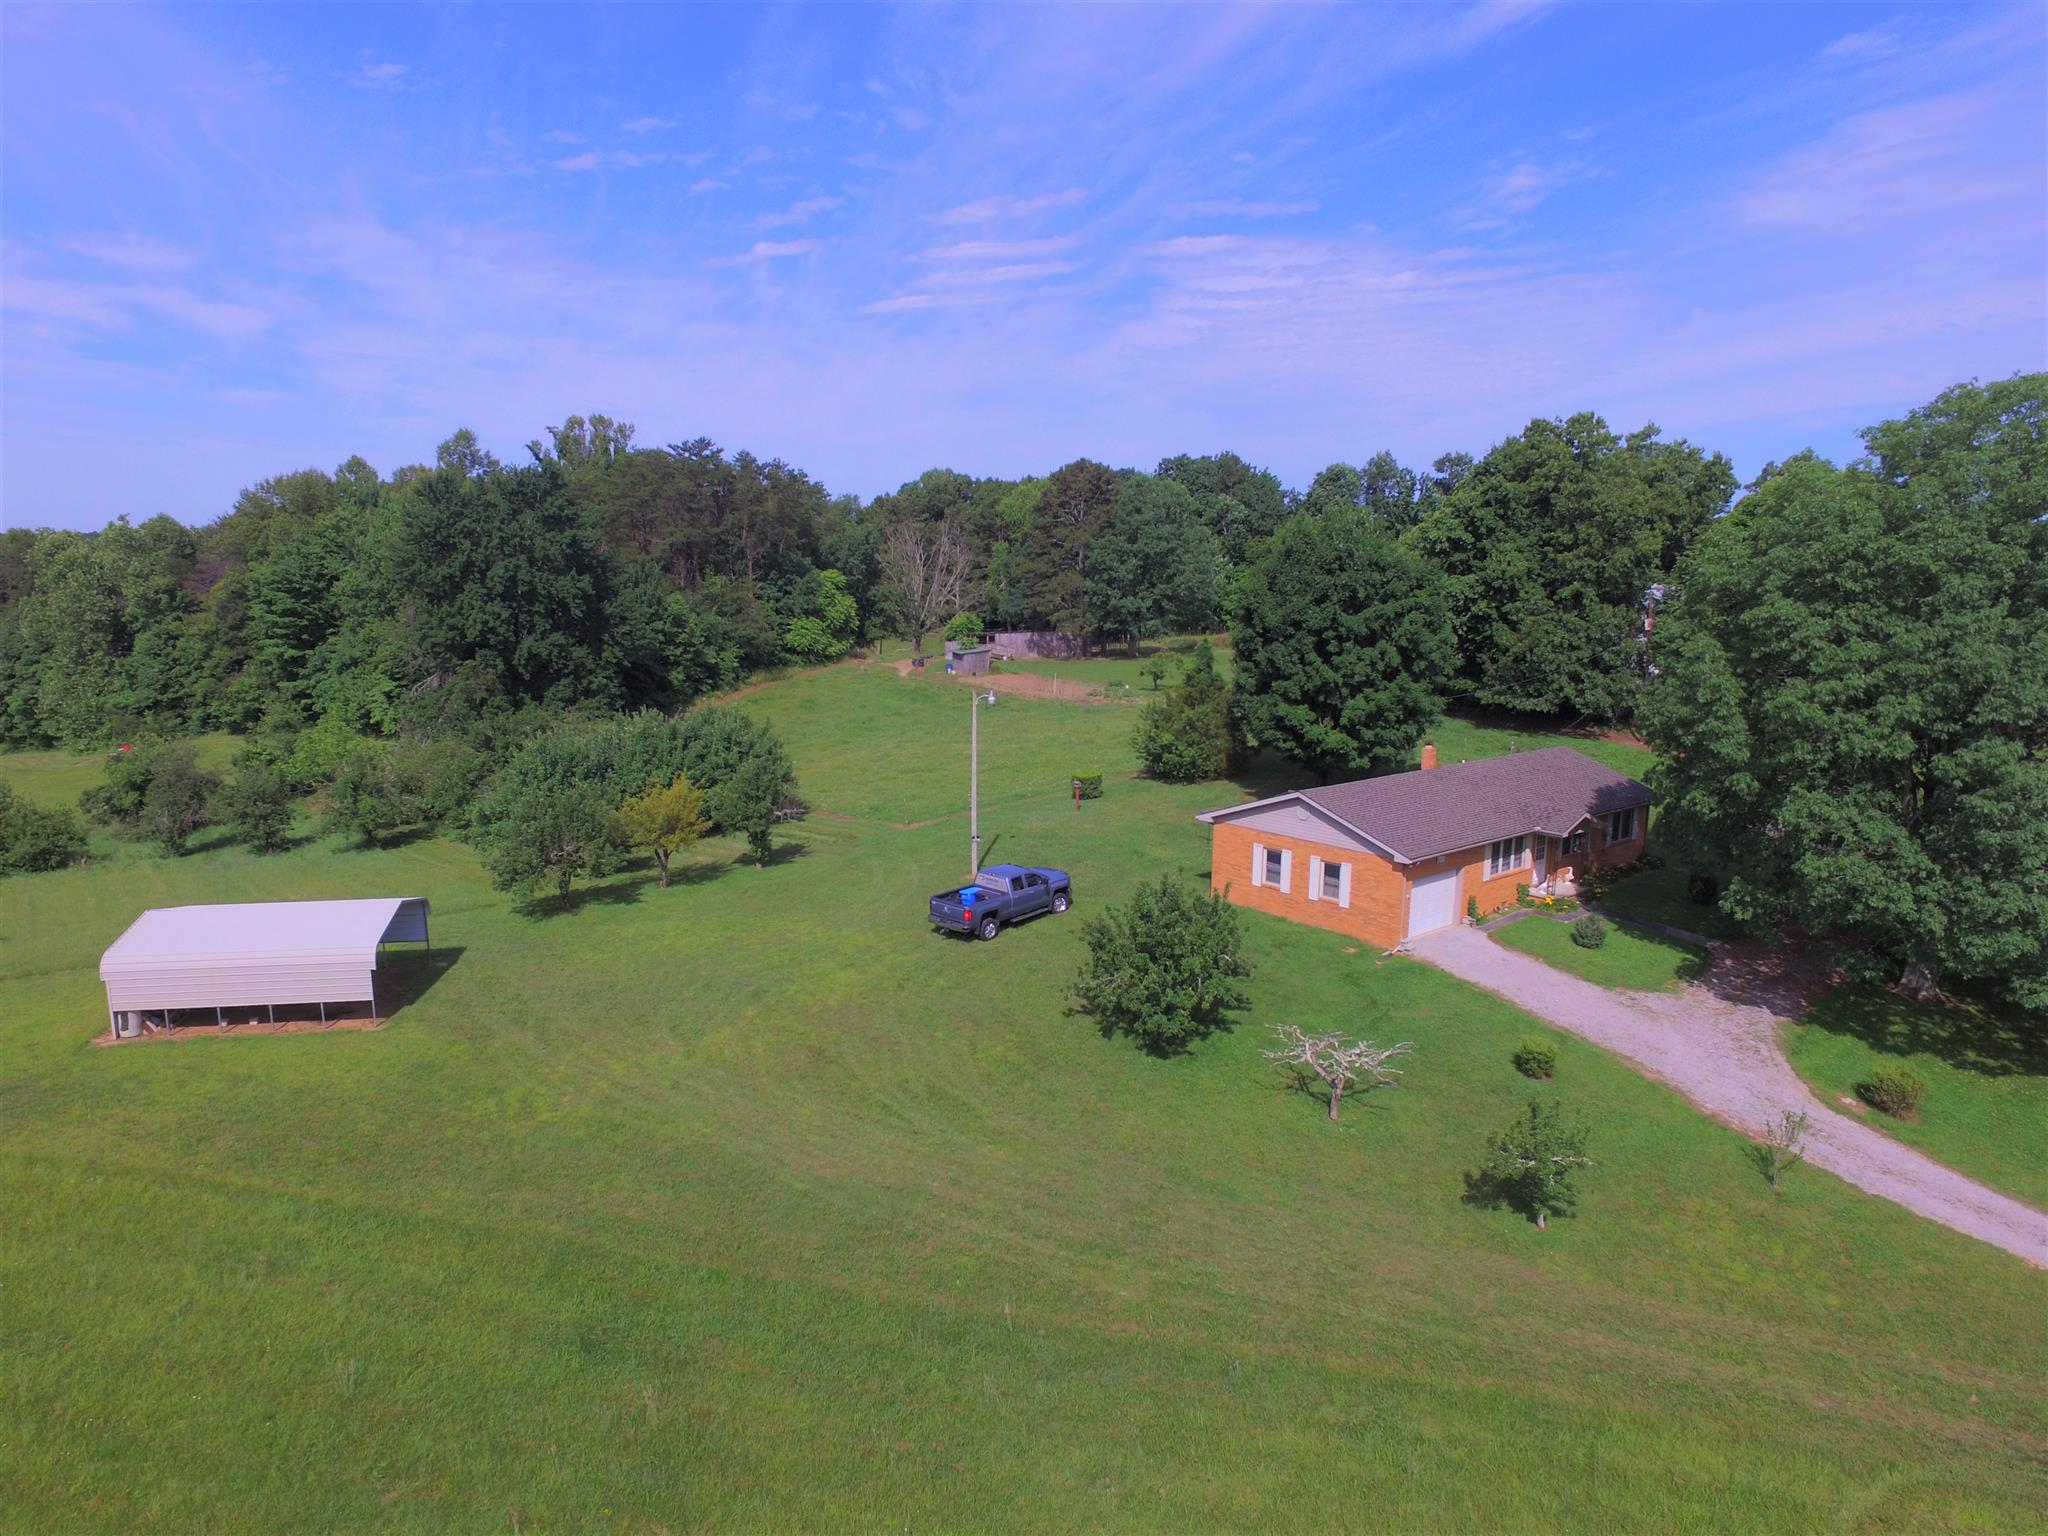 663 Farigrounds Road, Jamestown, TN 38556 - Jamestown, TN real estate listing